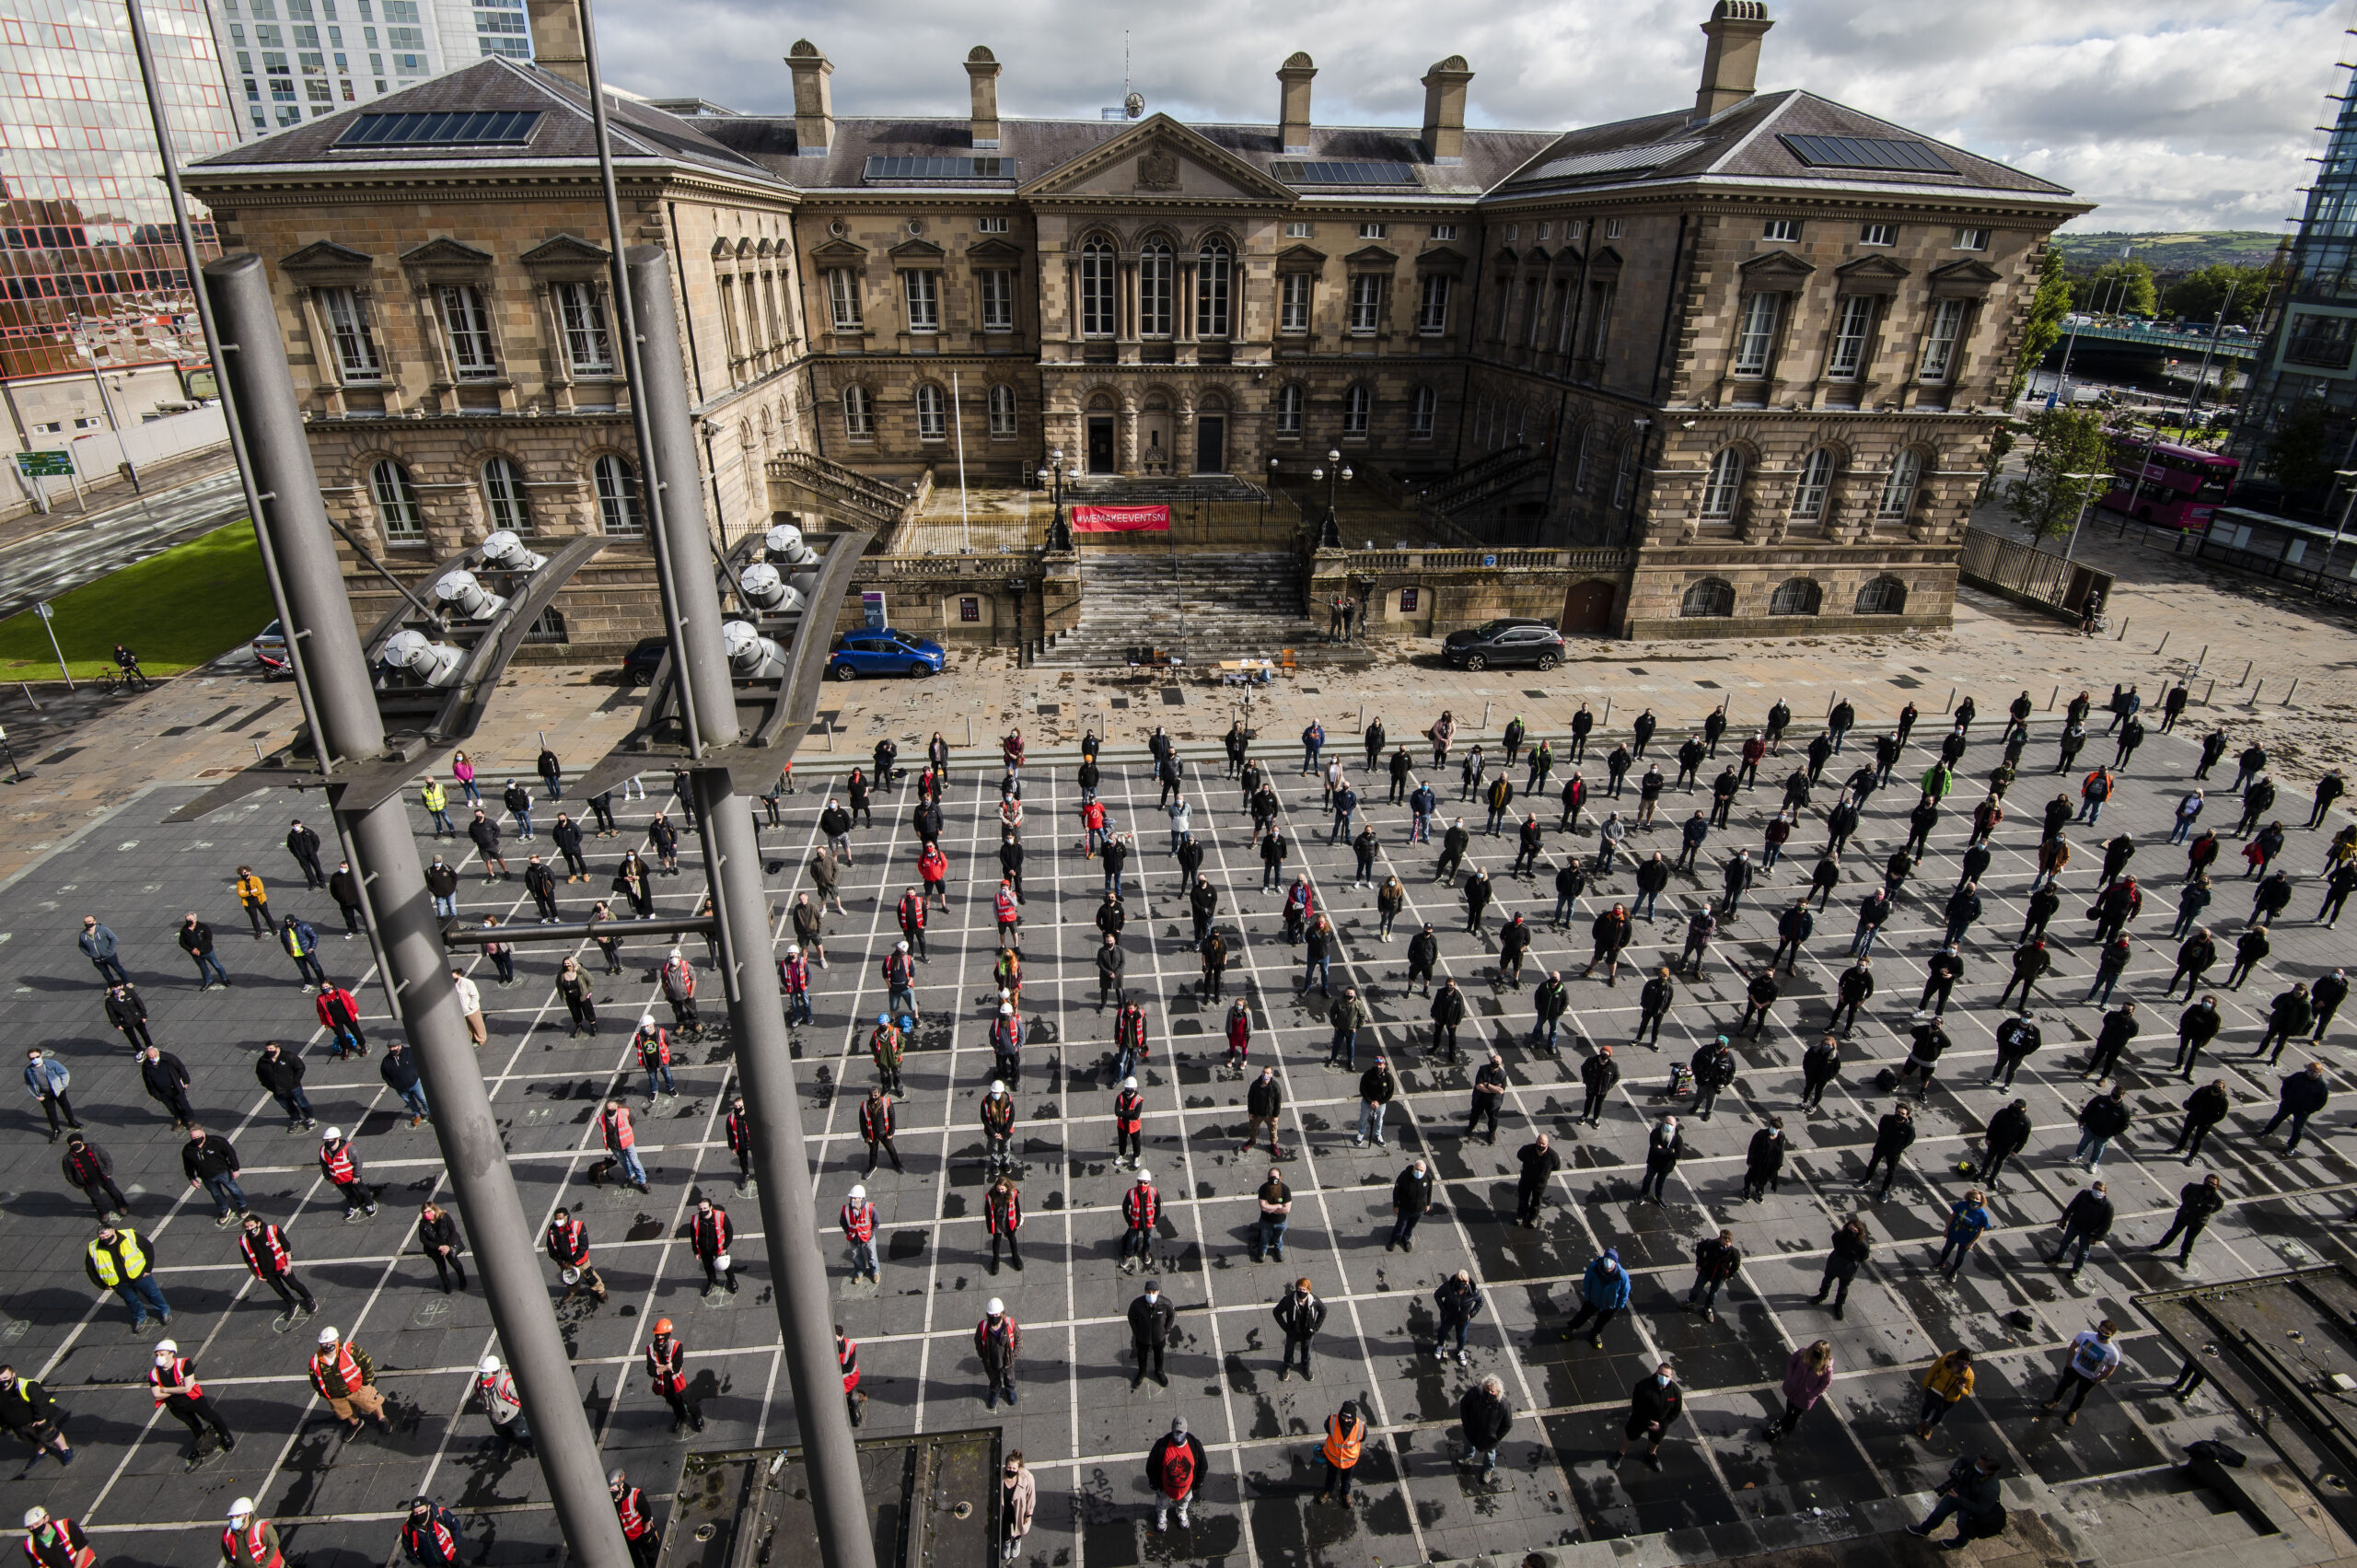 Over 500 members of THE NI LIVE EVENTS INDUSTRY stand peacefully in solidarity at Custom House Square today